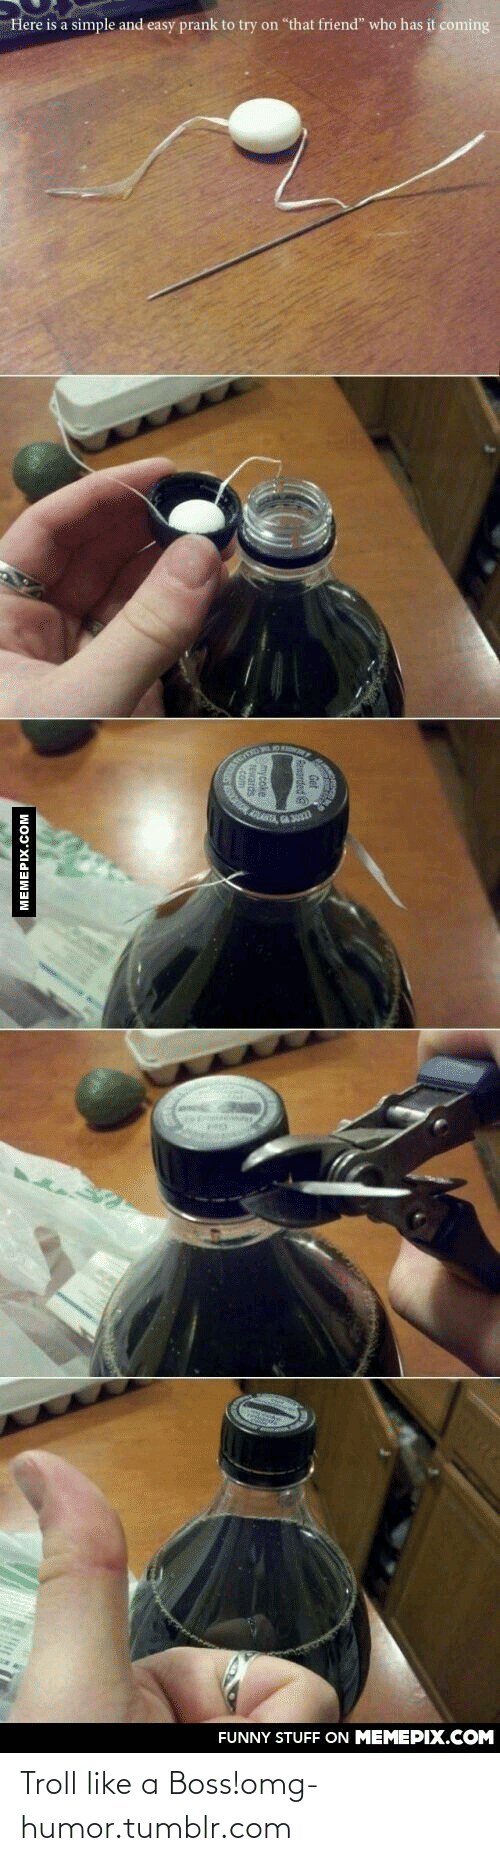 """It Coming: Here is a simple and easy prank to try on """"that friend"""" who has it coming  ANTA GA  FUNNY STUFF ON MEMEPIX.COM  MEMEPIX.COM Troll like a Boss!omg-humor.tumblr.com"""